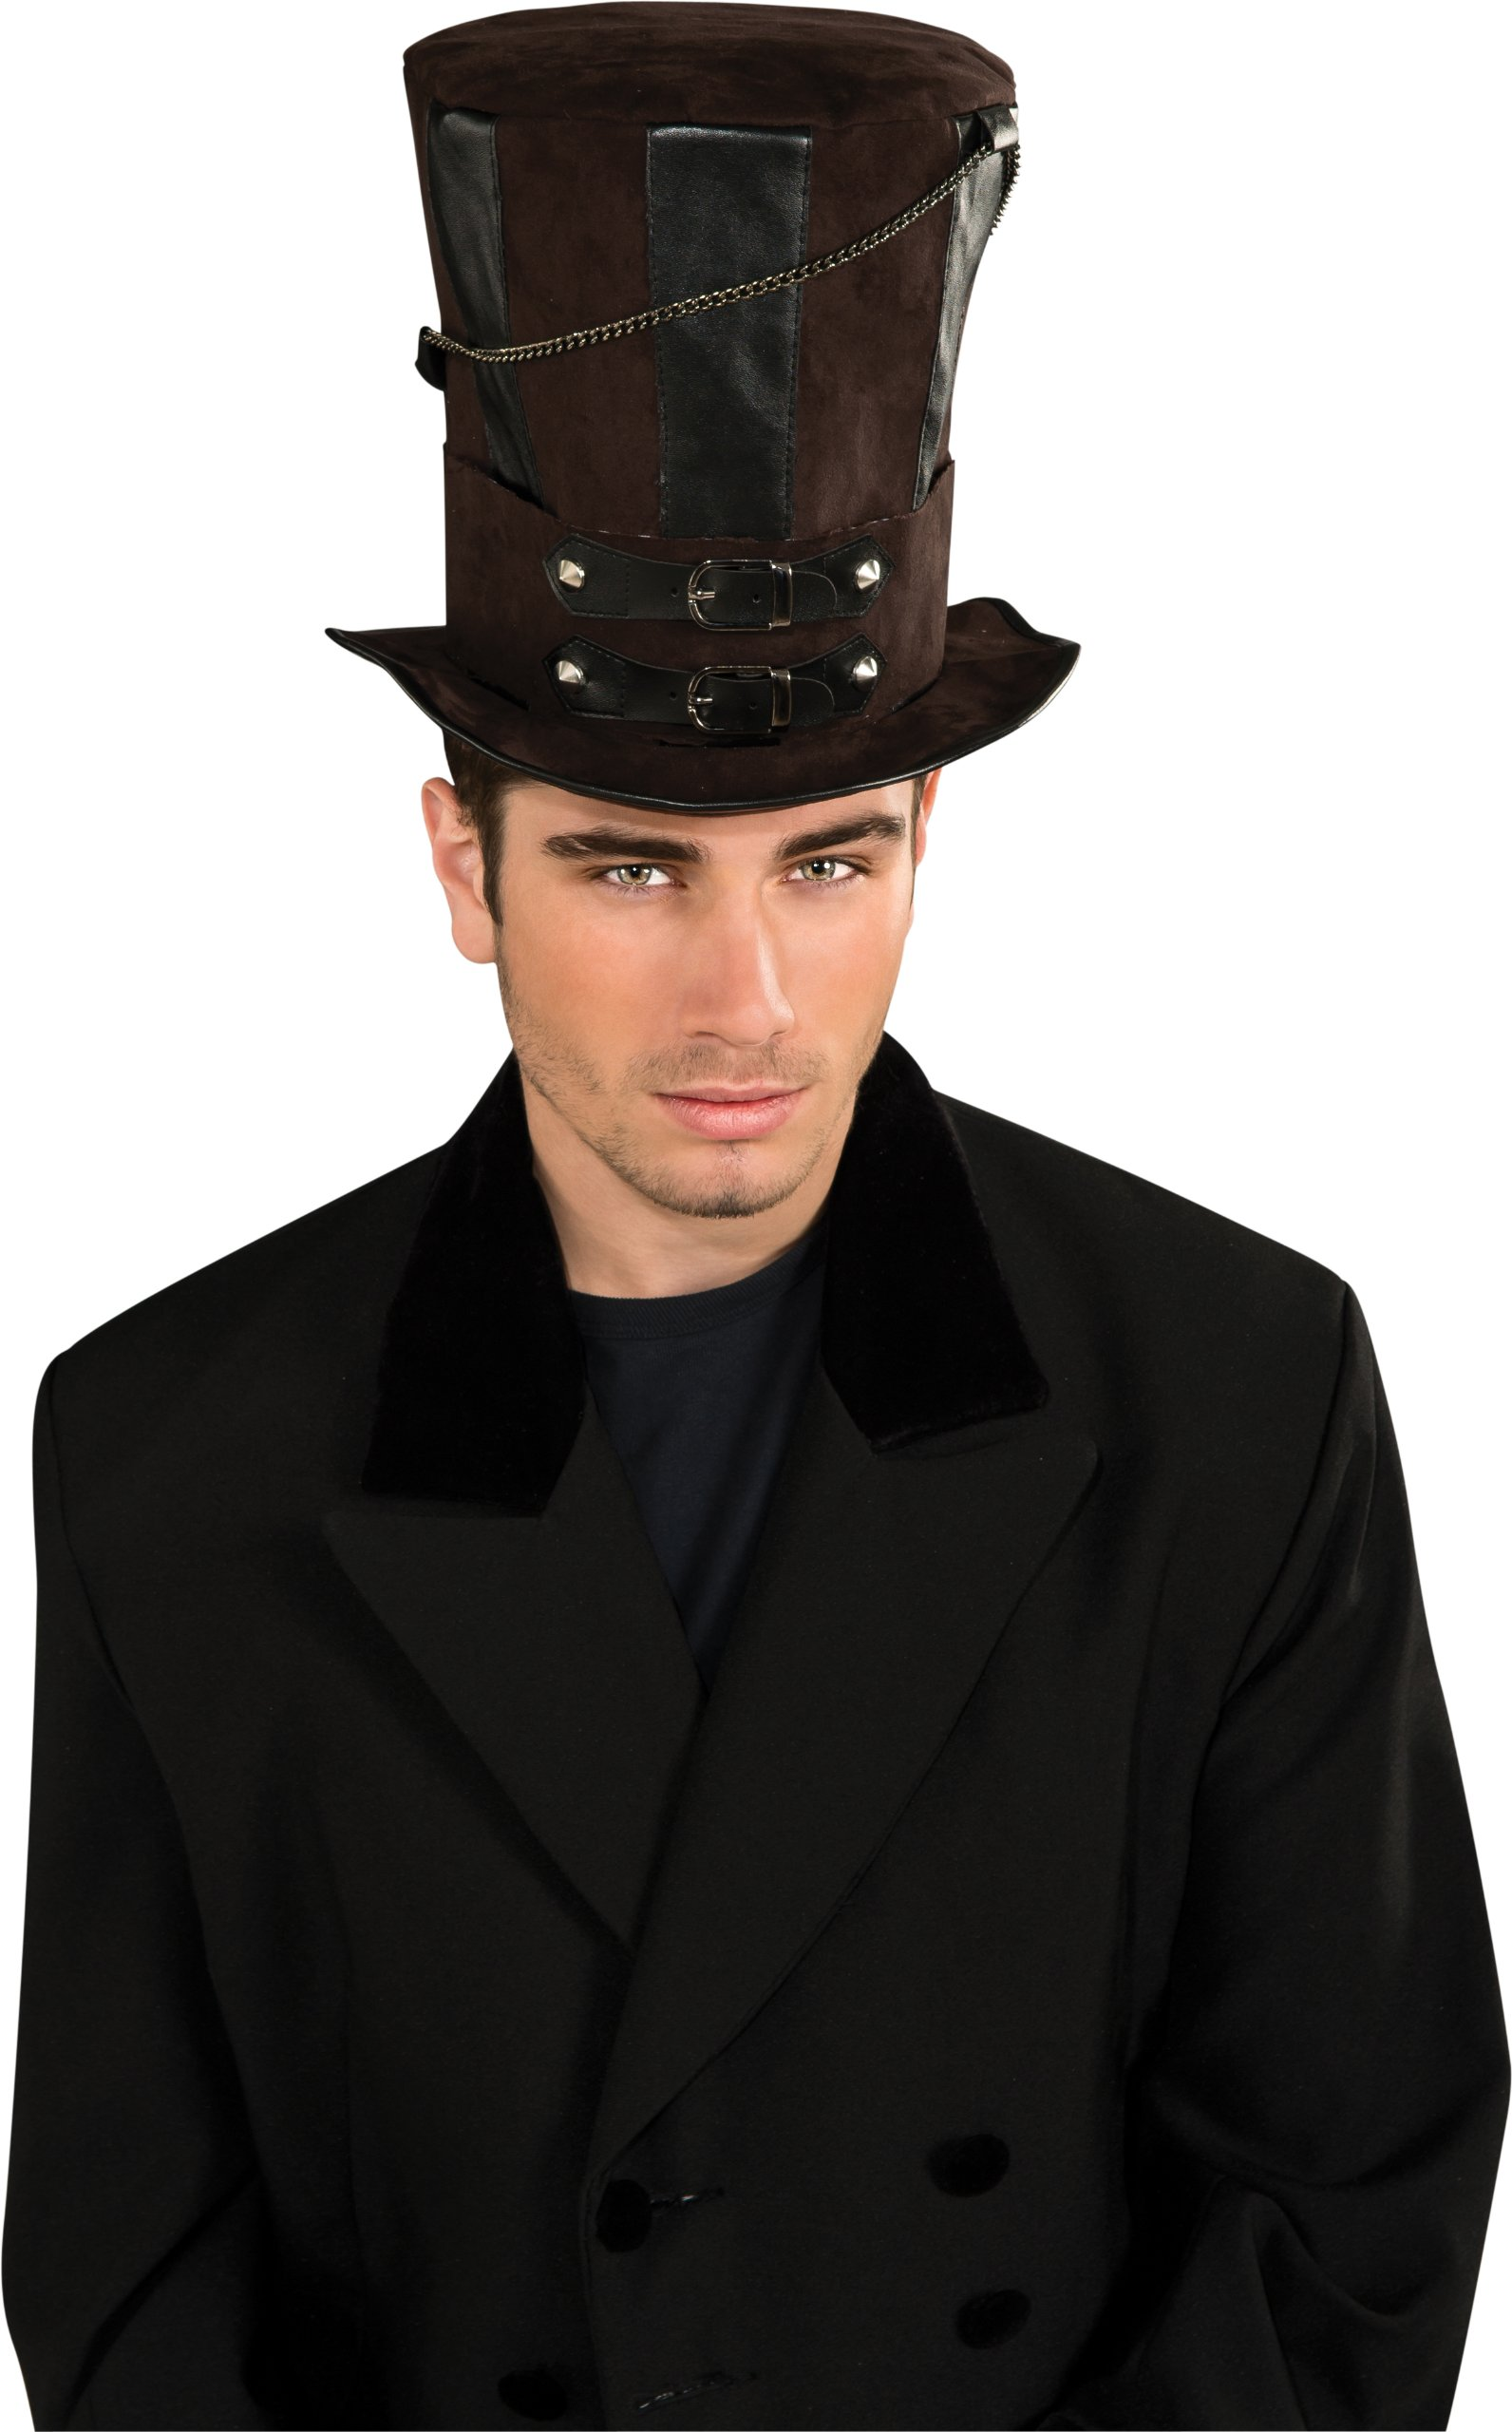 Rubie's Steampunk Top Hat With Chains and Buckles, Brown/Black, One Size